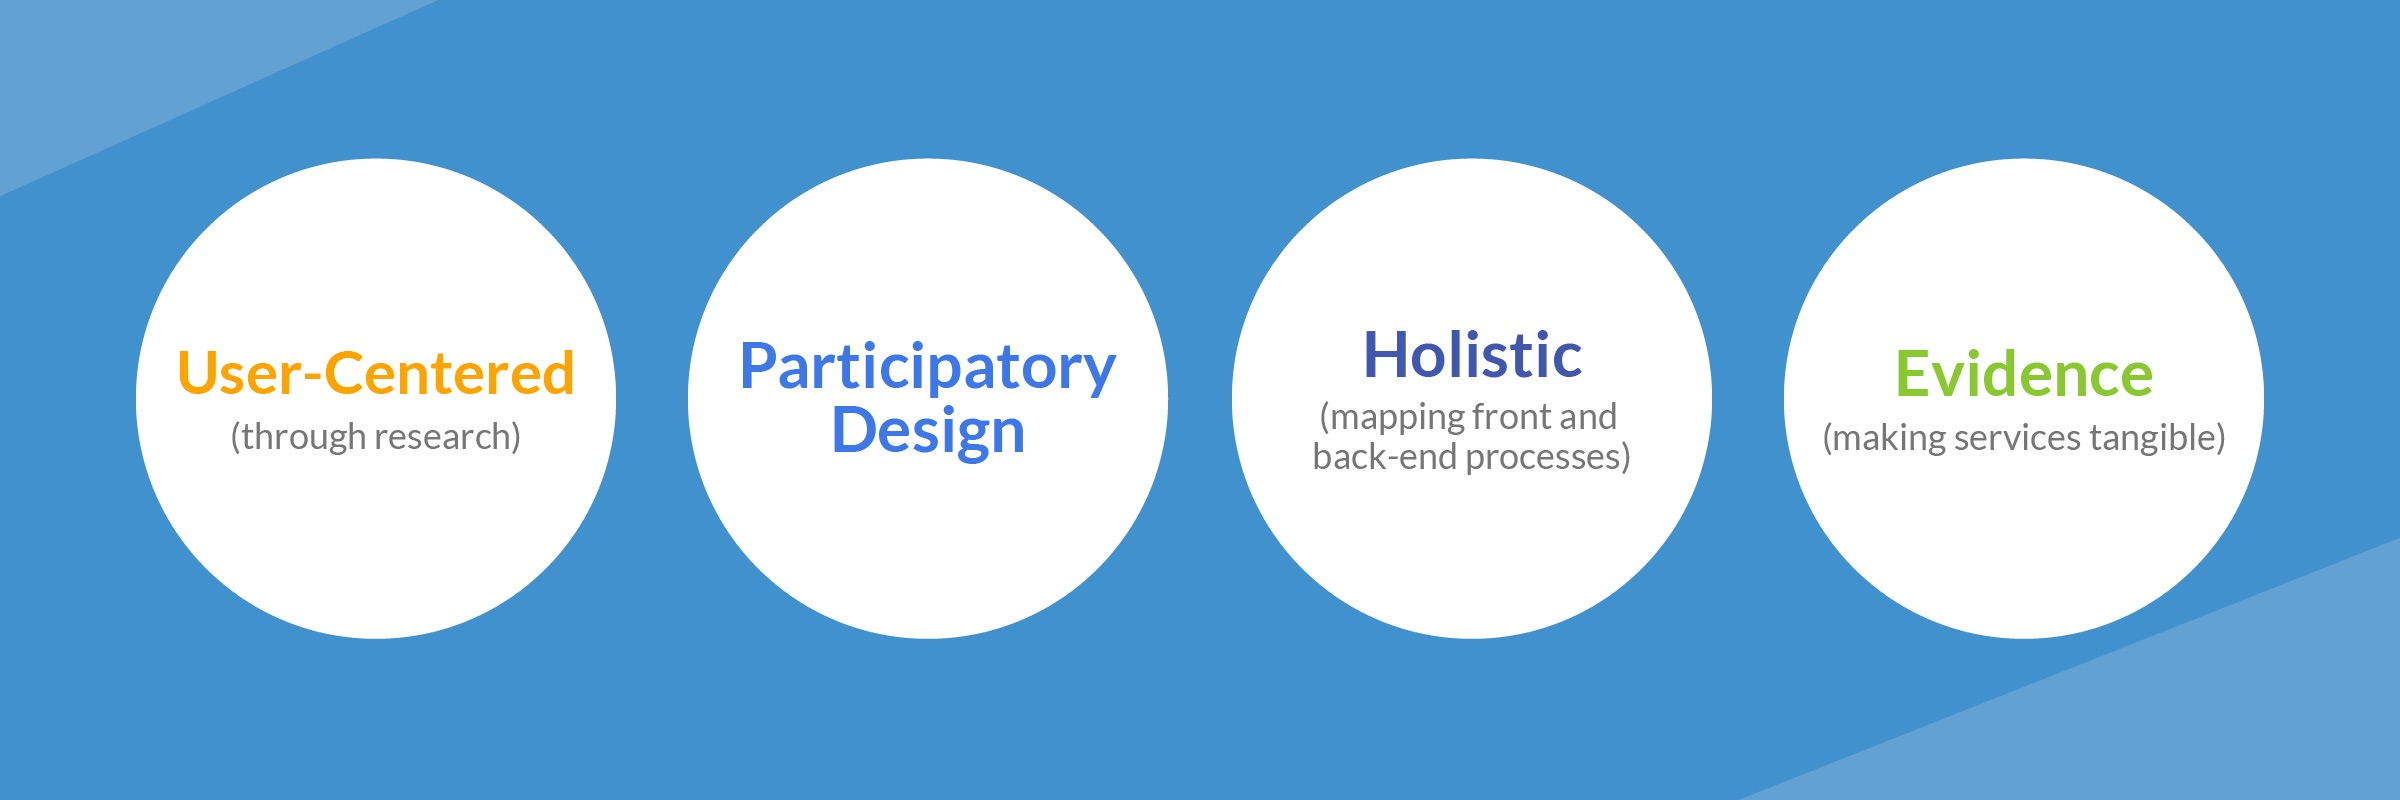 """four circles, each with different words inside. The first says """"User-Centered (through research)"""". The second """"Participatory Design"""". The third """"Holistic (mapping front and back-end processes)"""". The last says """"Evidence (making services tangible)""""."""